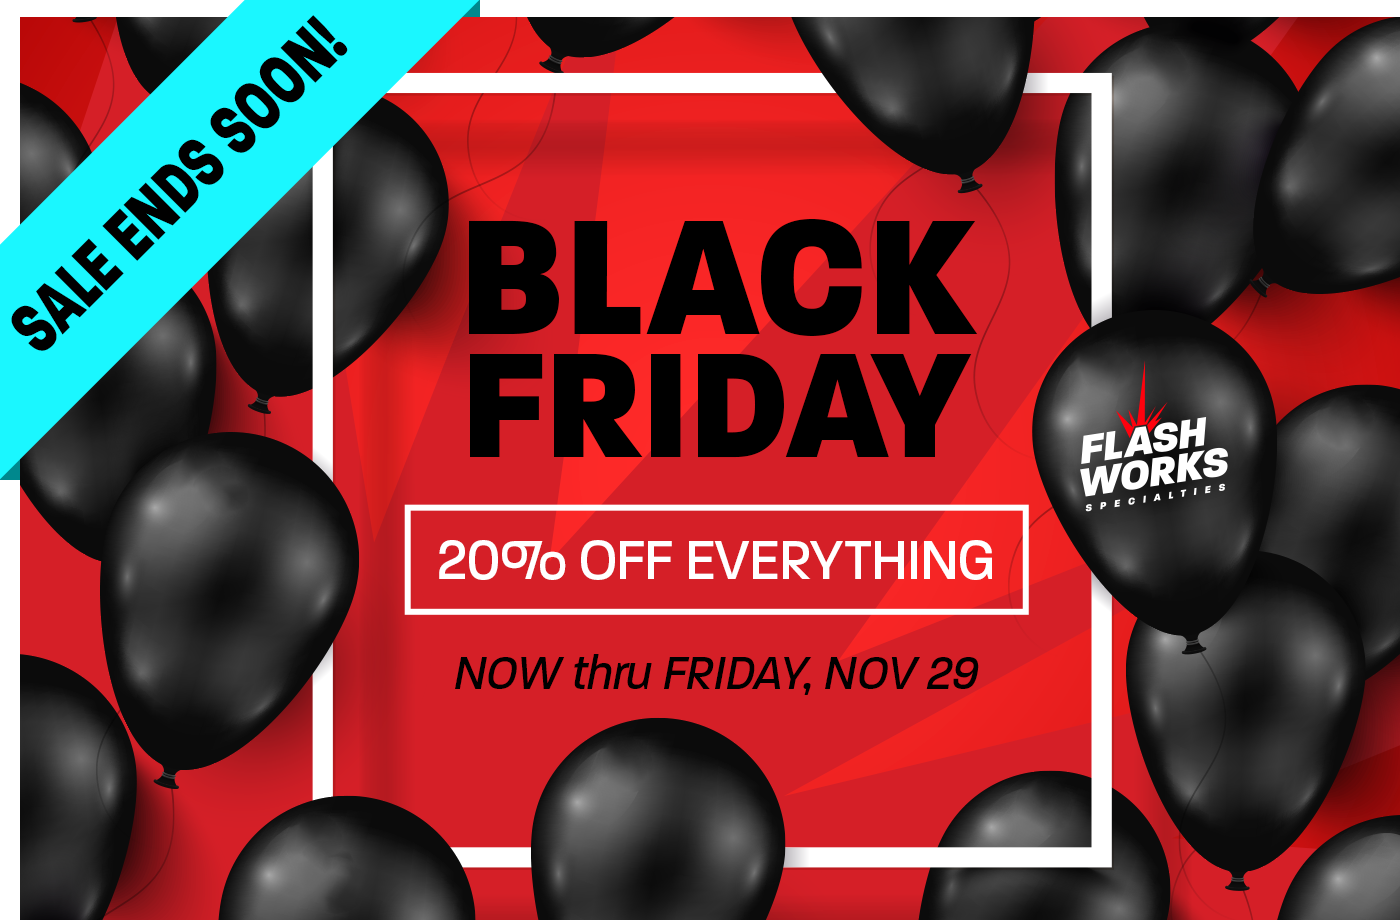 Don't miss this 20% off EVERYTHING best Black Friday sale in Hutto, TX